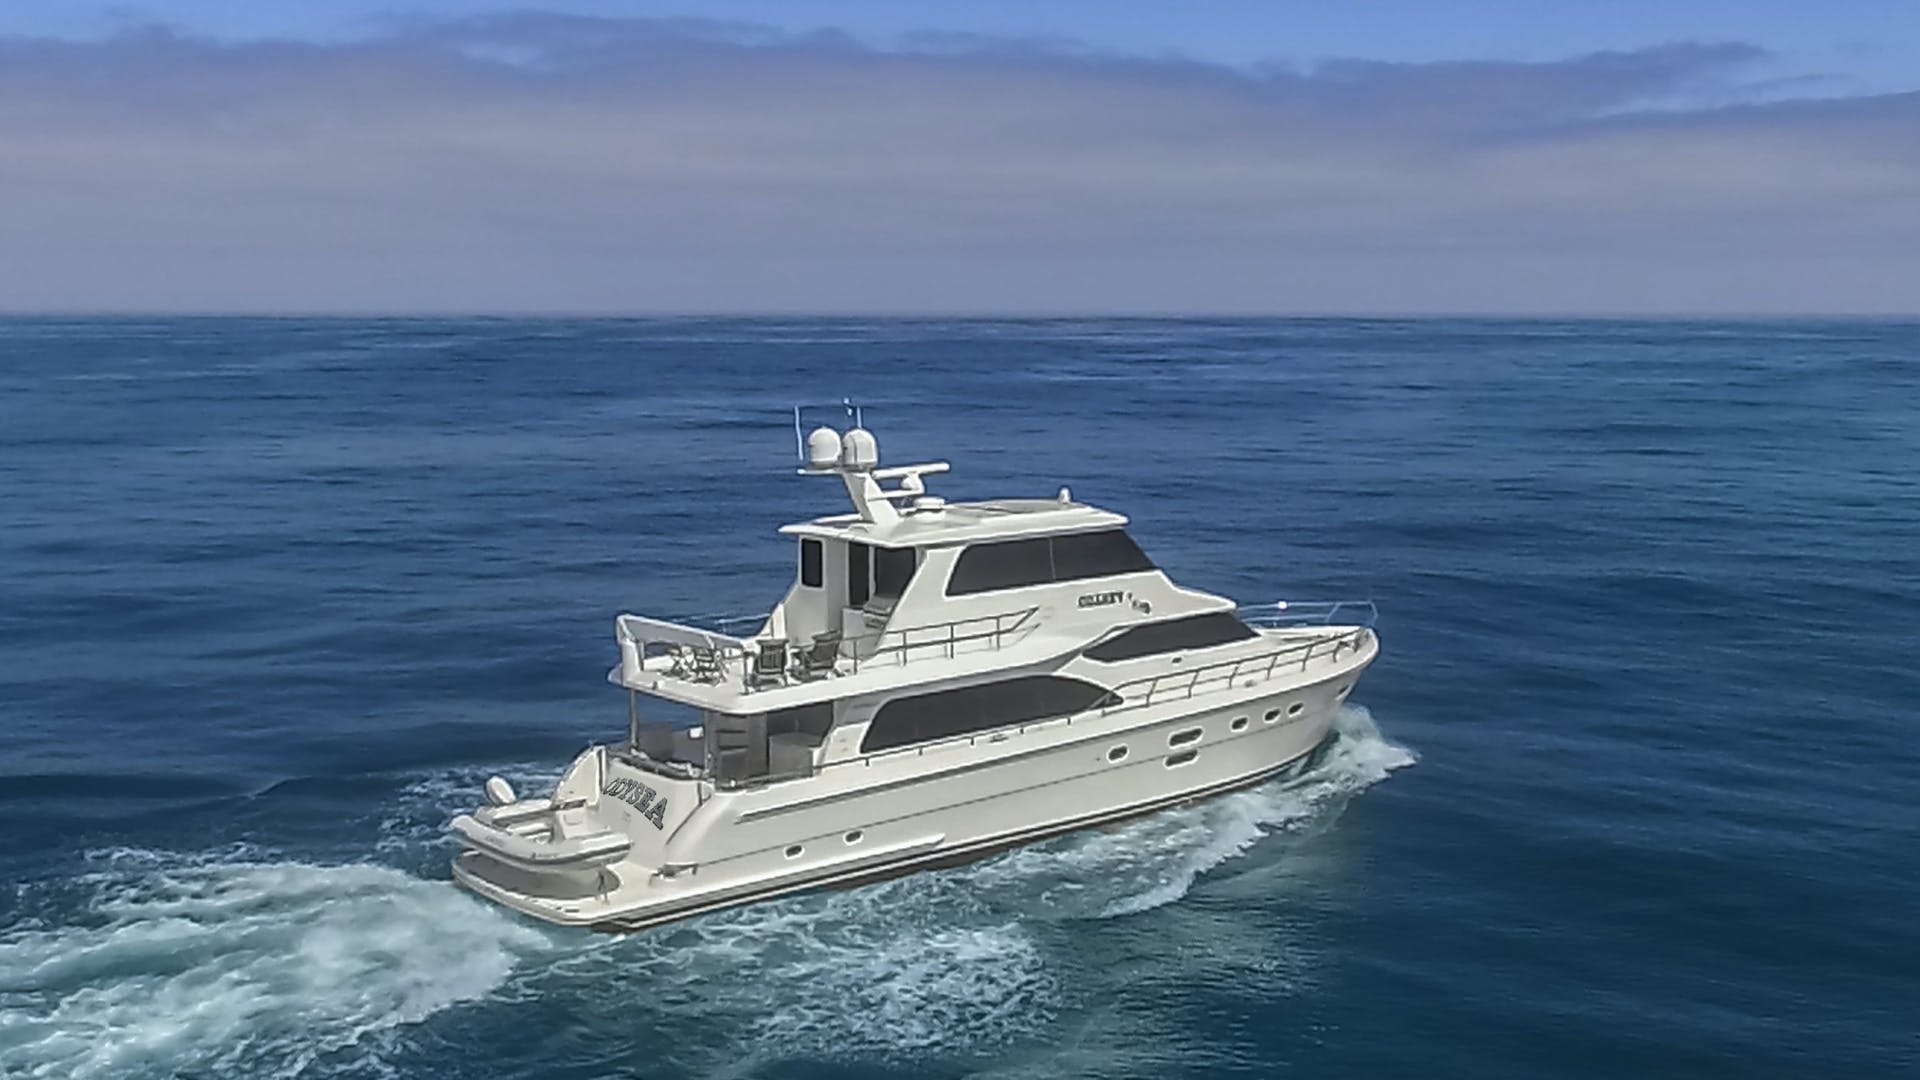 2014 Hampton 76' 76' Skylounge Motoryacht ODYSEA | Picture 1 of 55